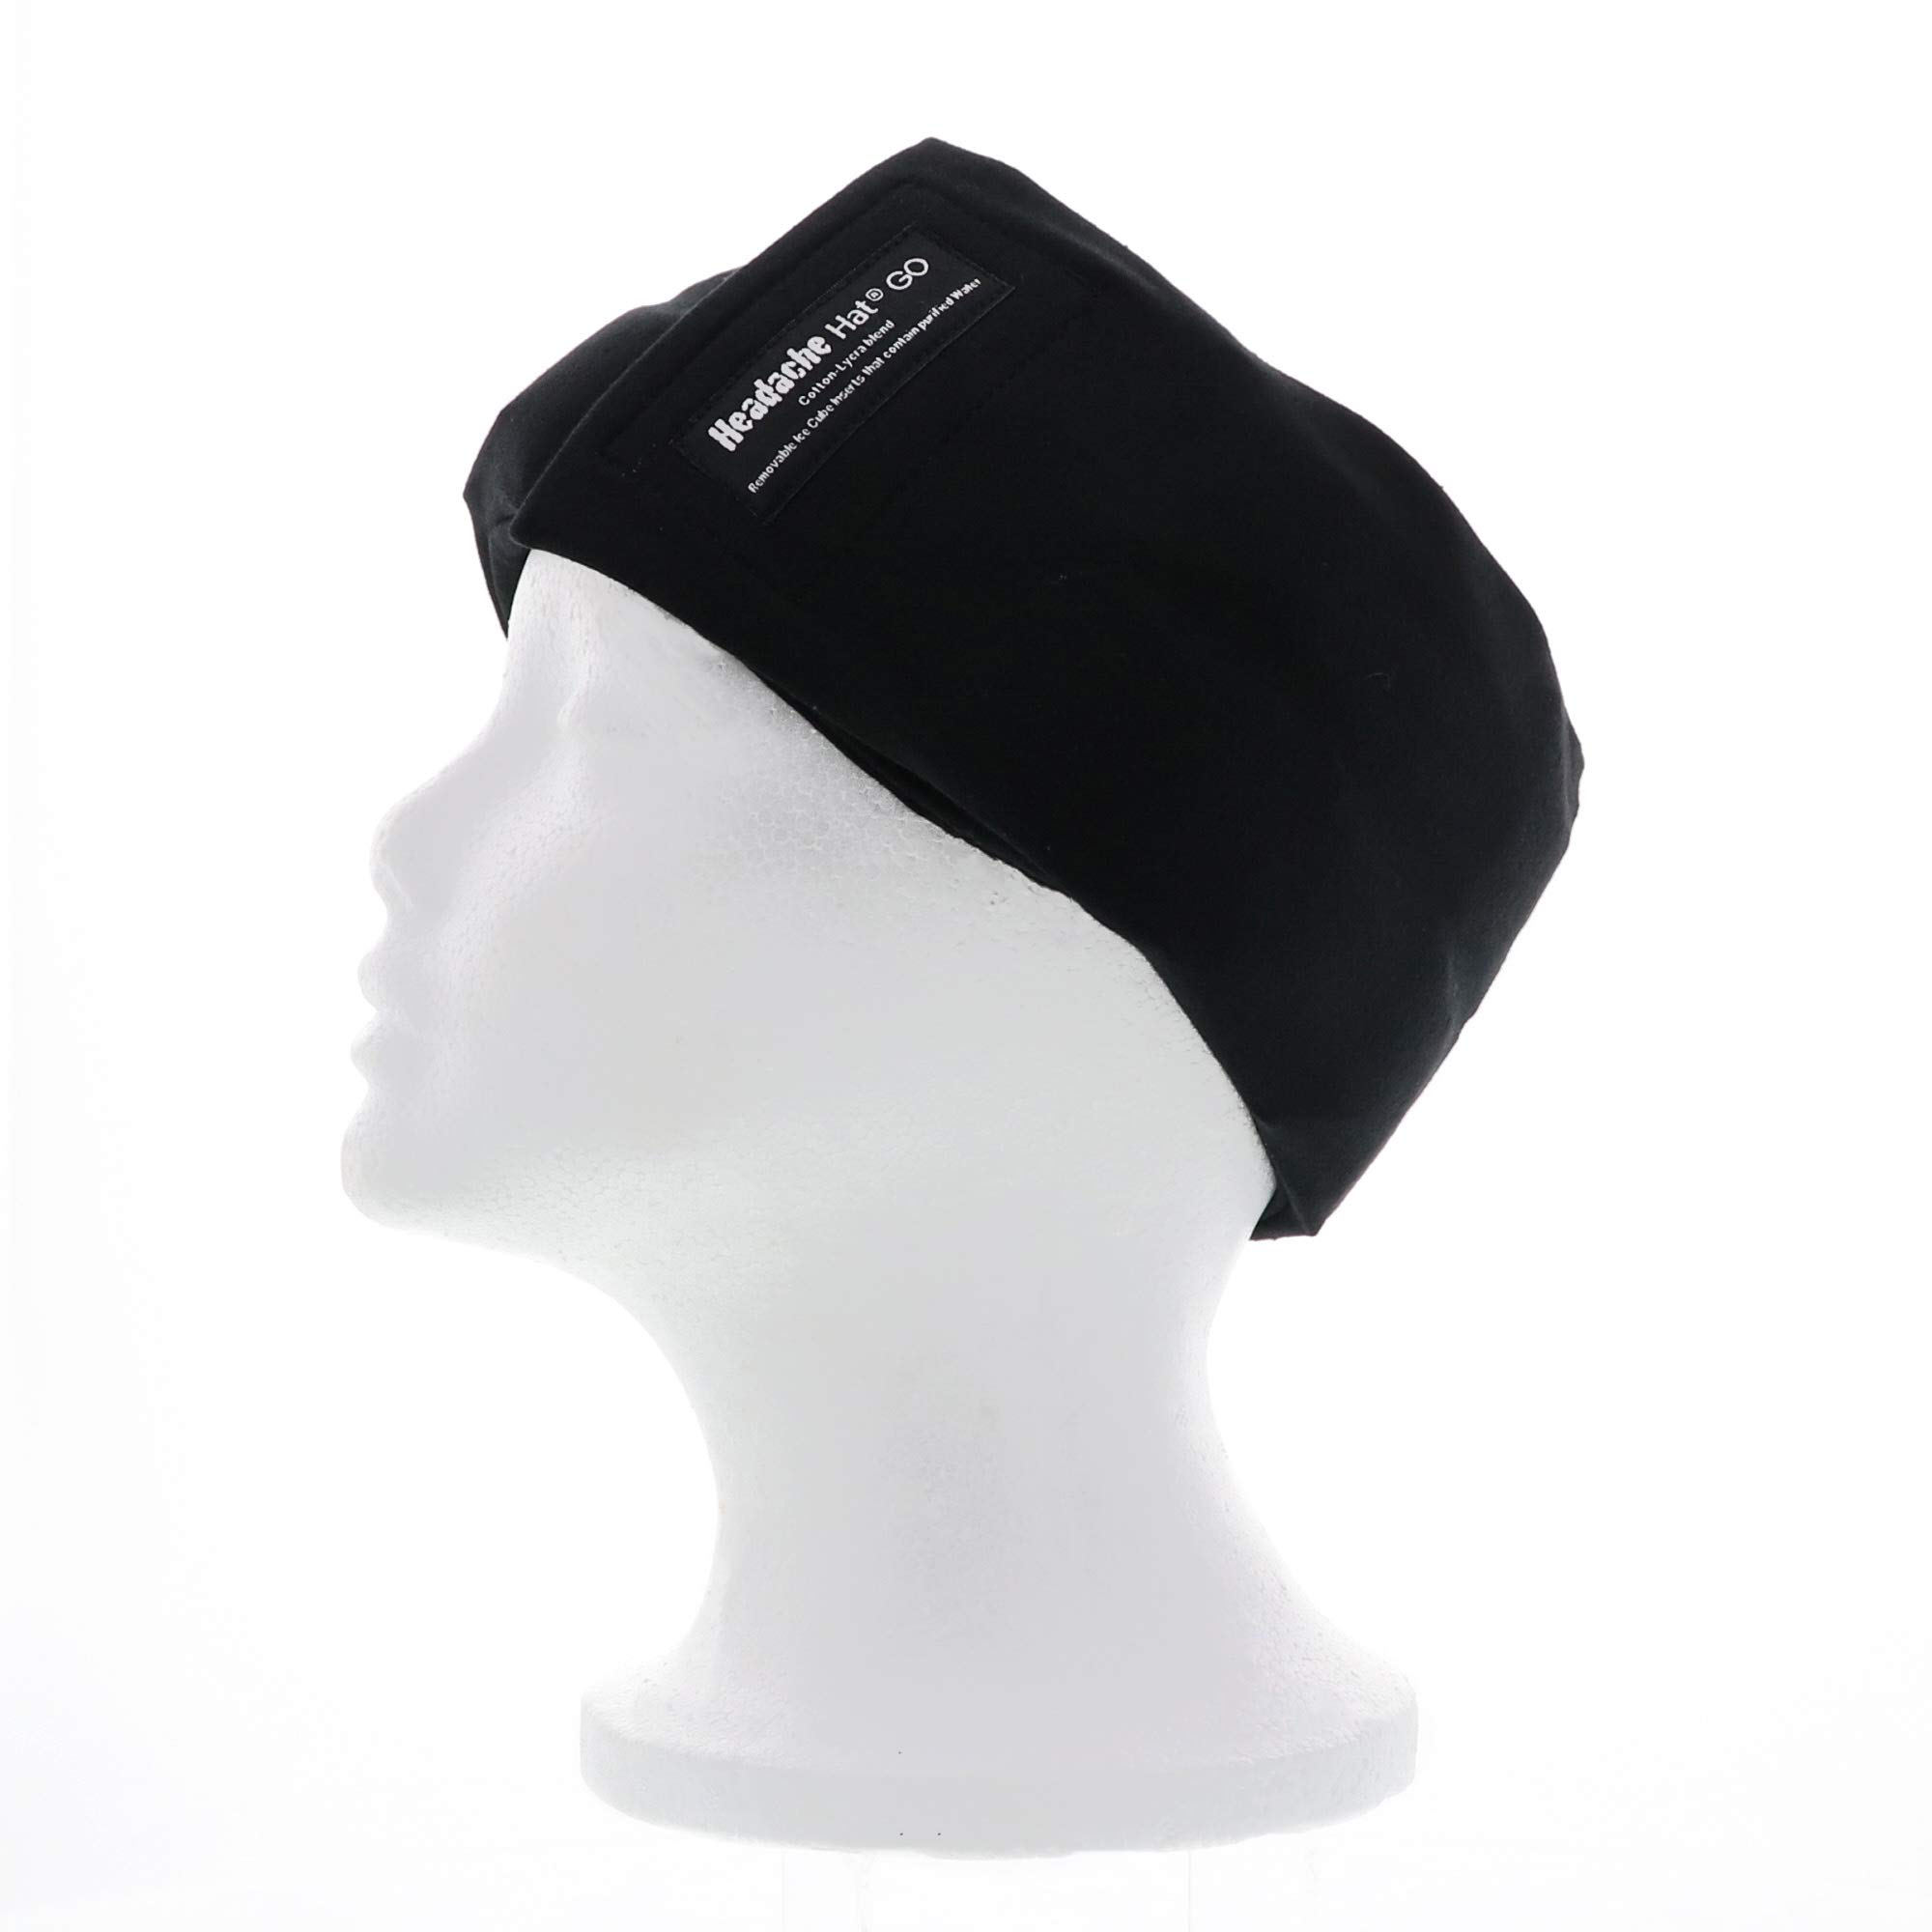 Headache Hat- GO (Black) Ice Pack for Migraine Headaches and Tension Relief, Extra Ice Mat Included